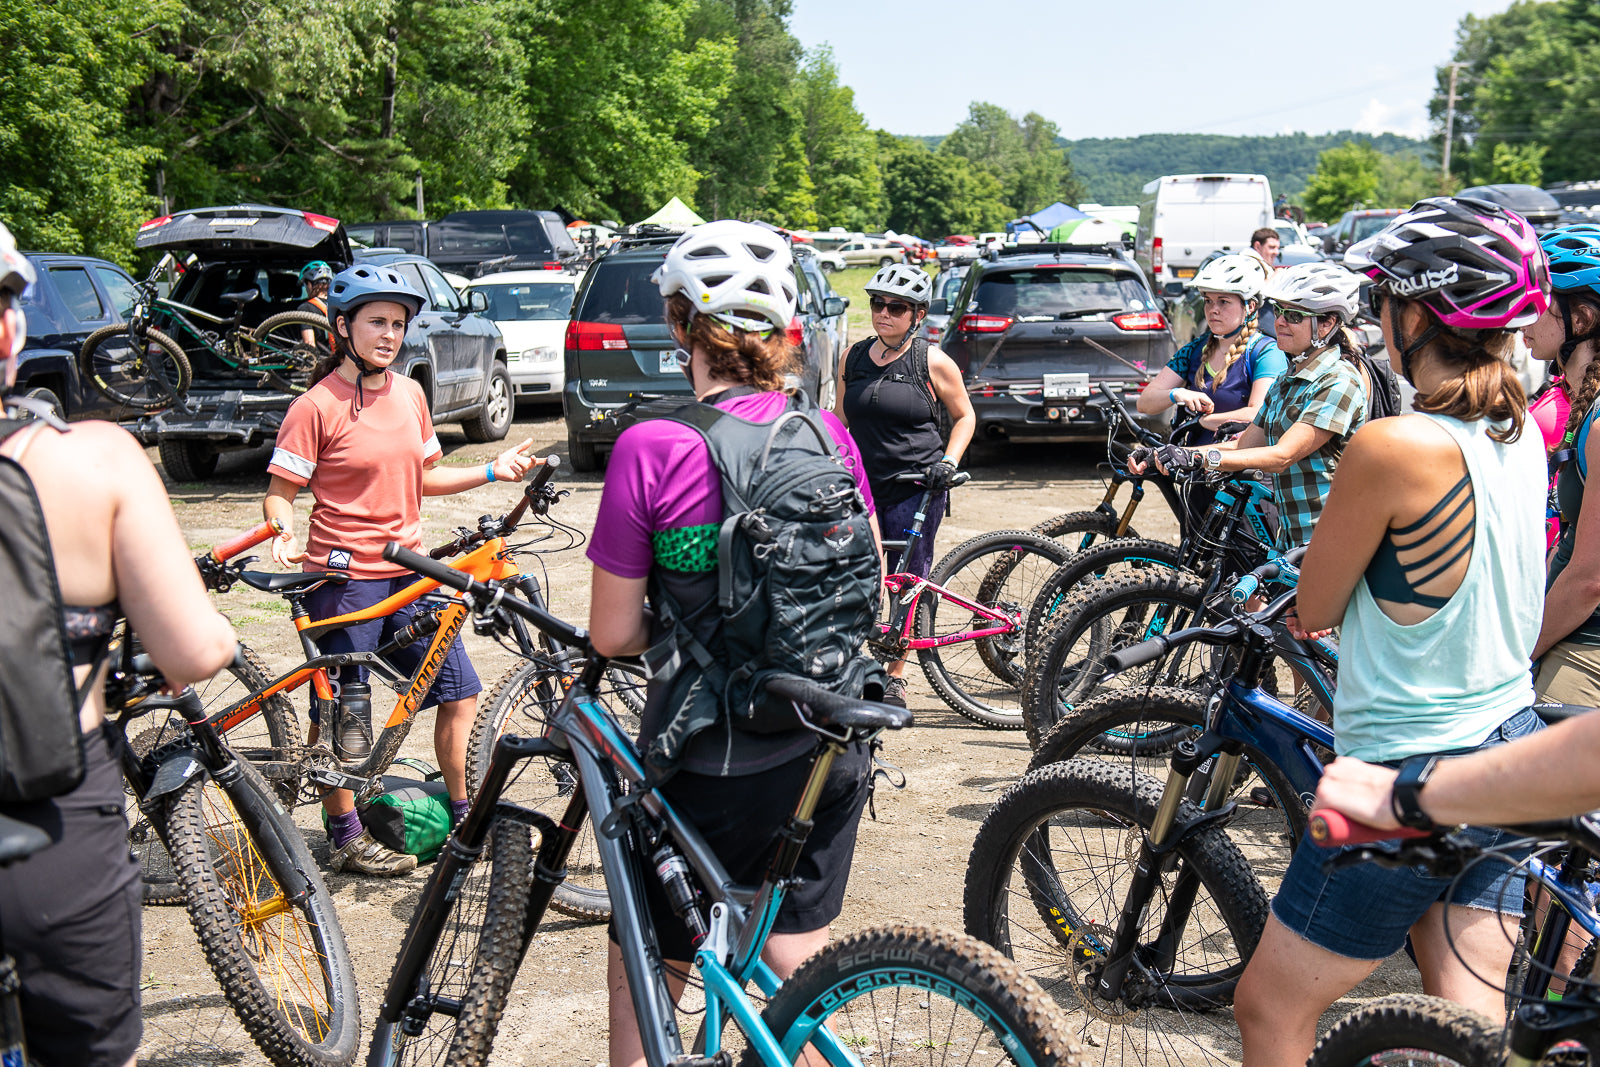 I'm Just Getting Into Mountain Biking, Where Do I Start? - Join a Group